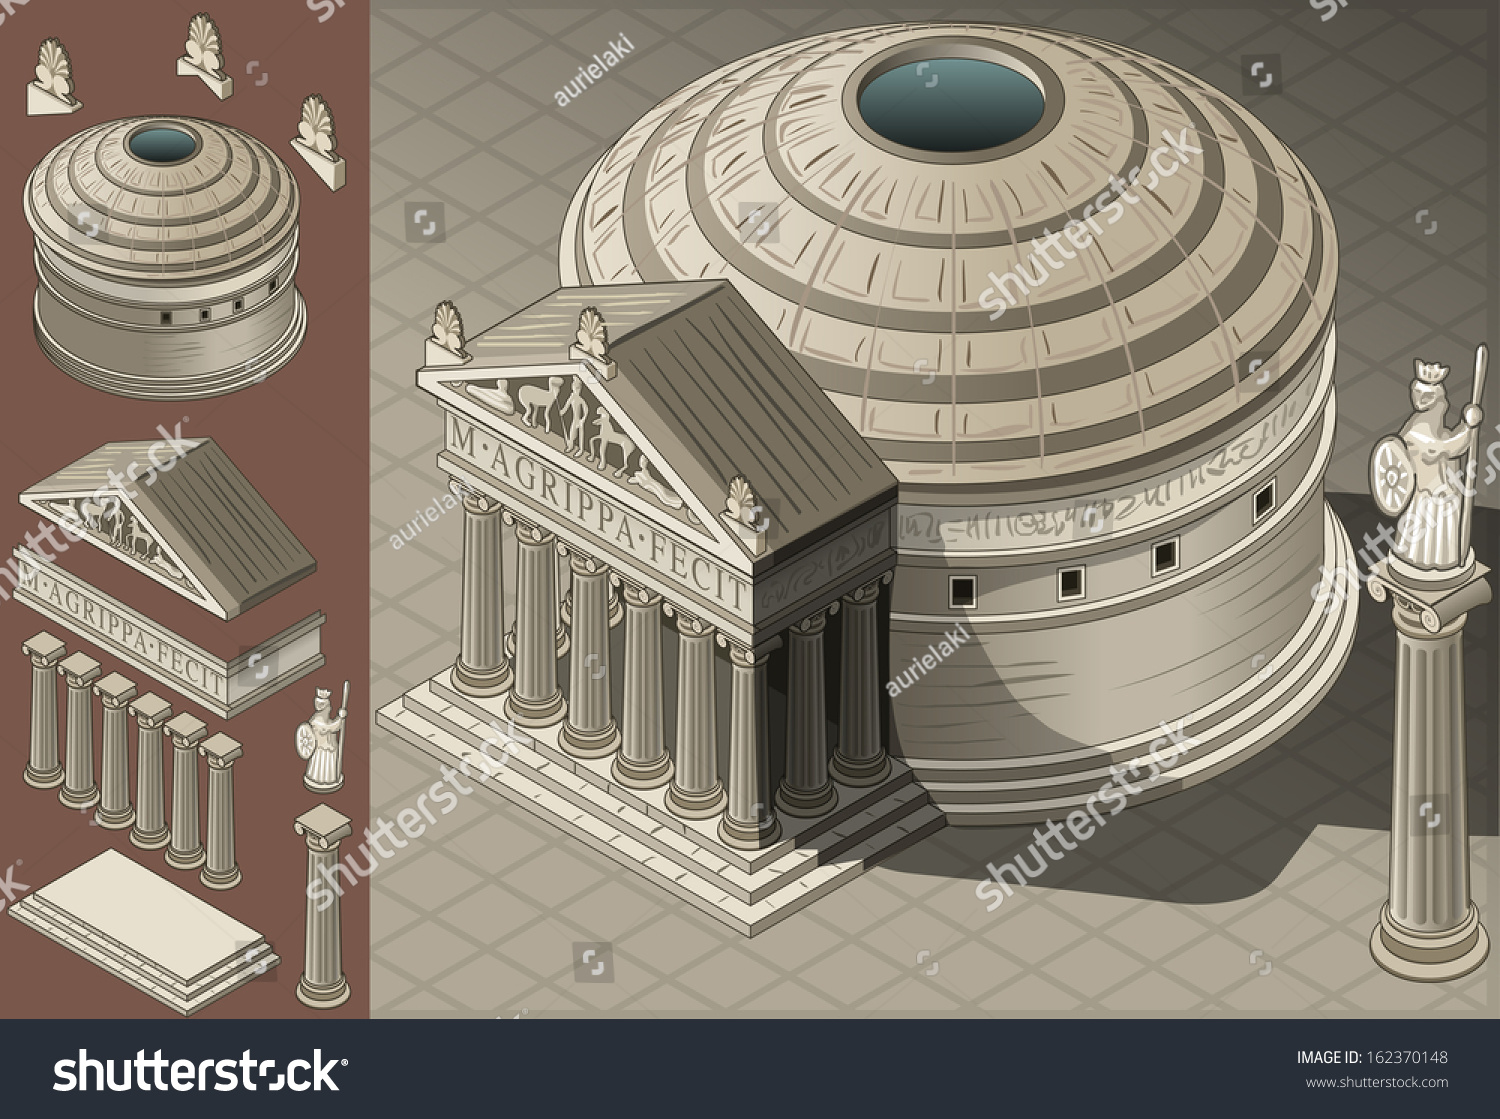 Isometric pantheon building ancient rome tiles stock for Building drawing online